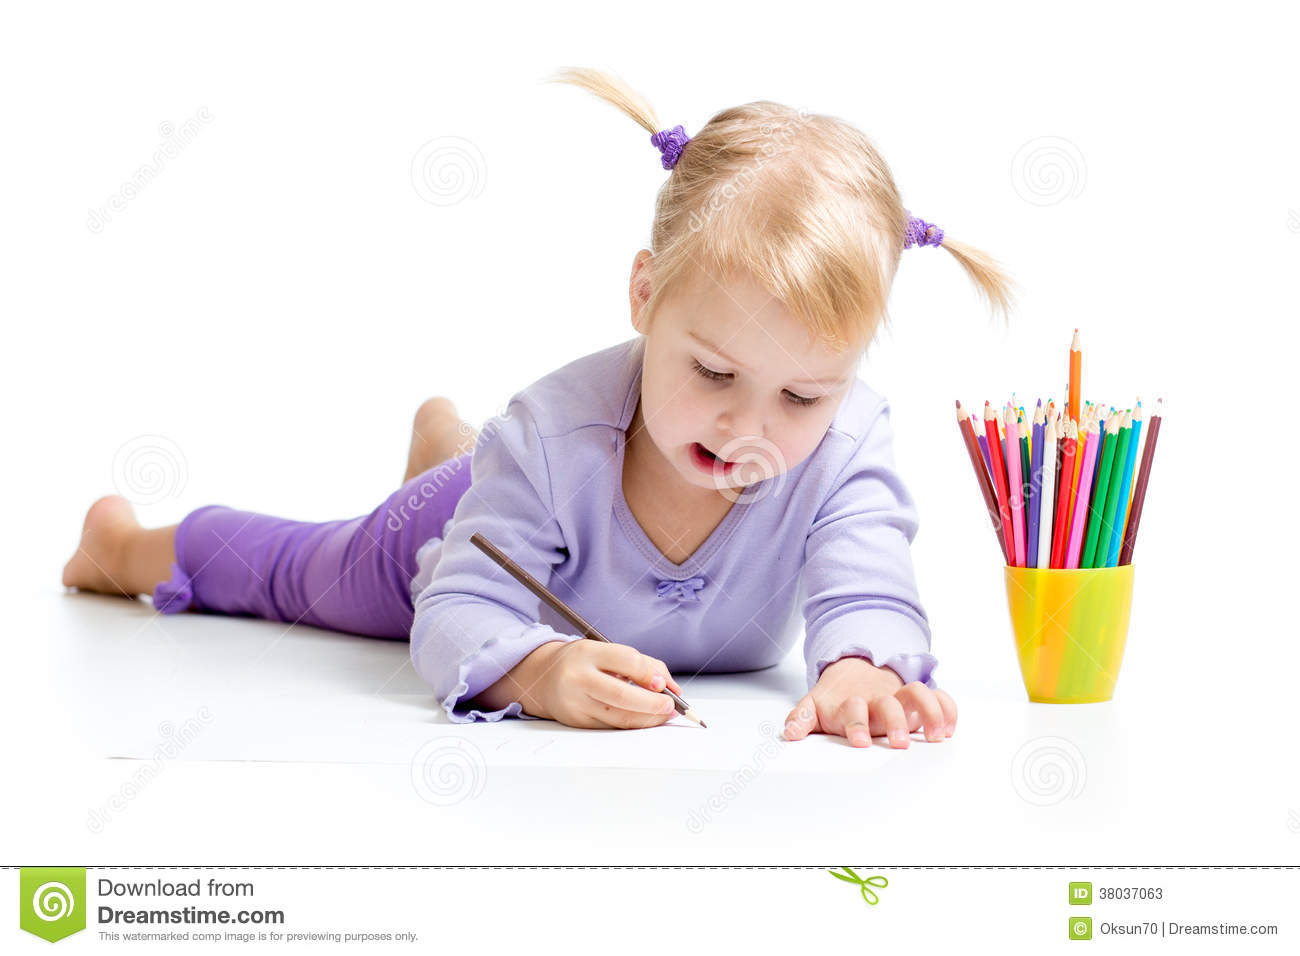 Kid Drawing With Color Pencils Stock Image - Image of dress ...